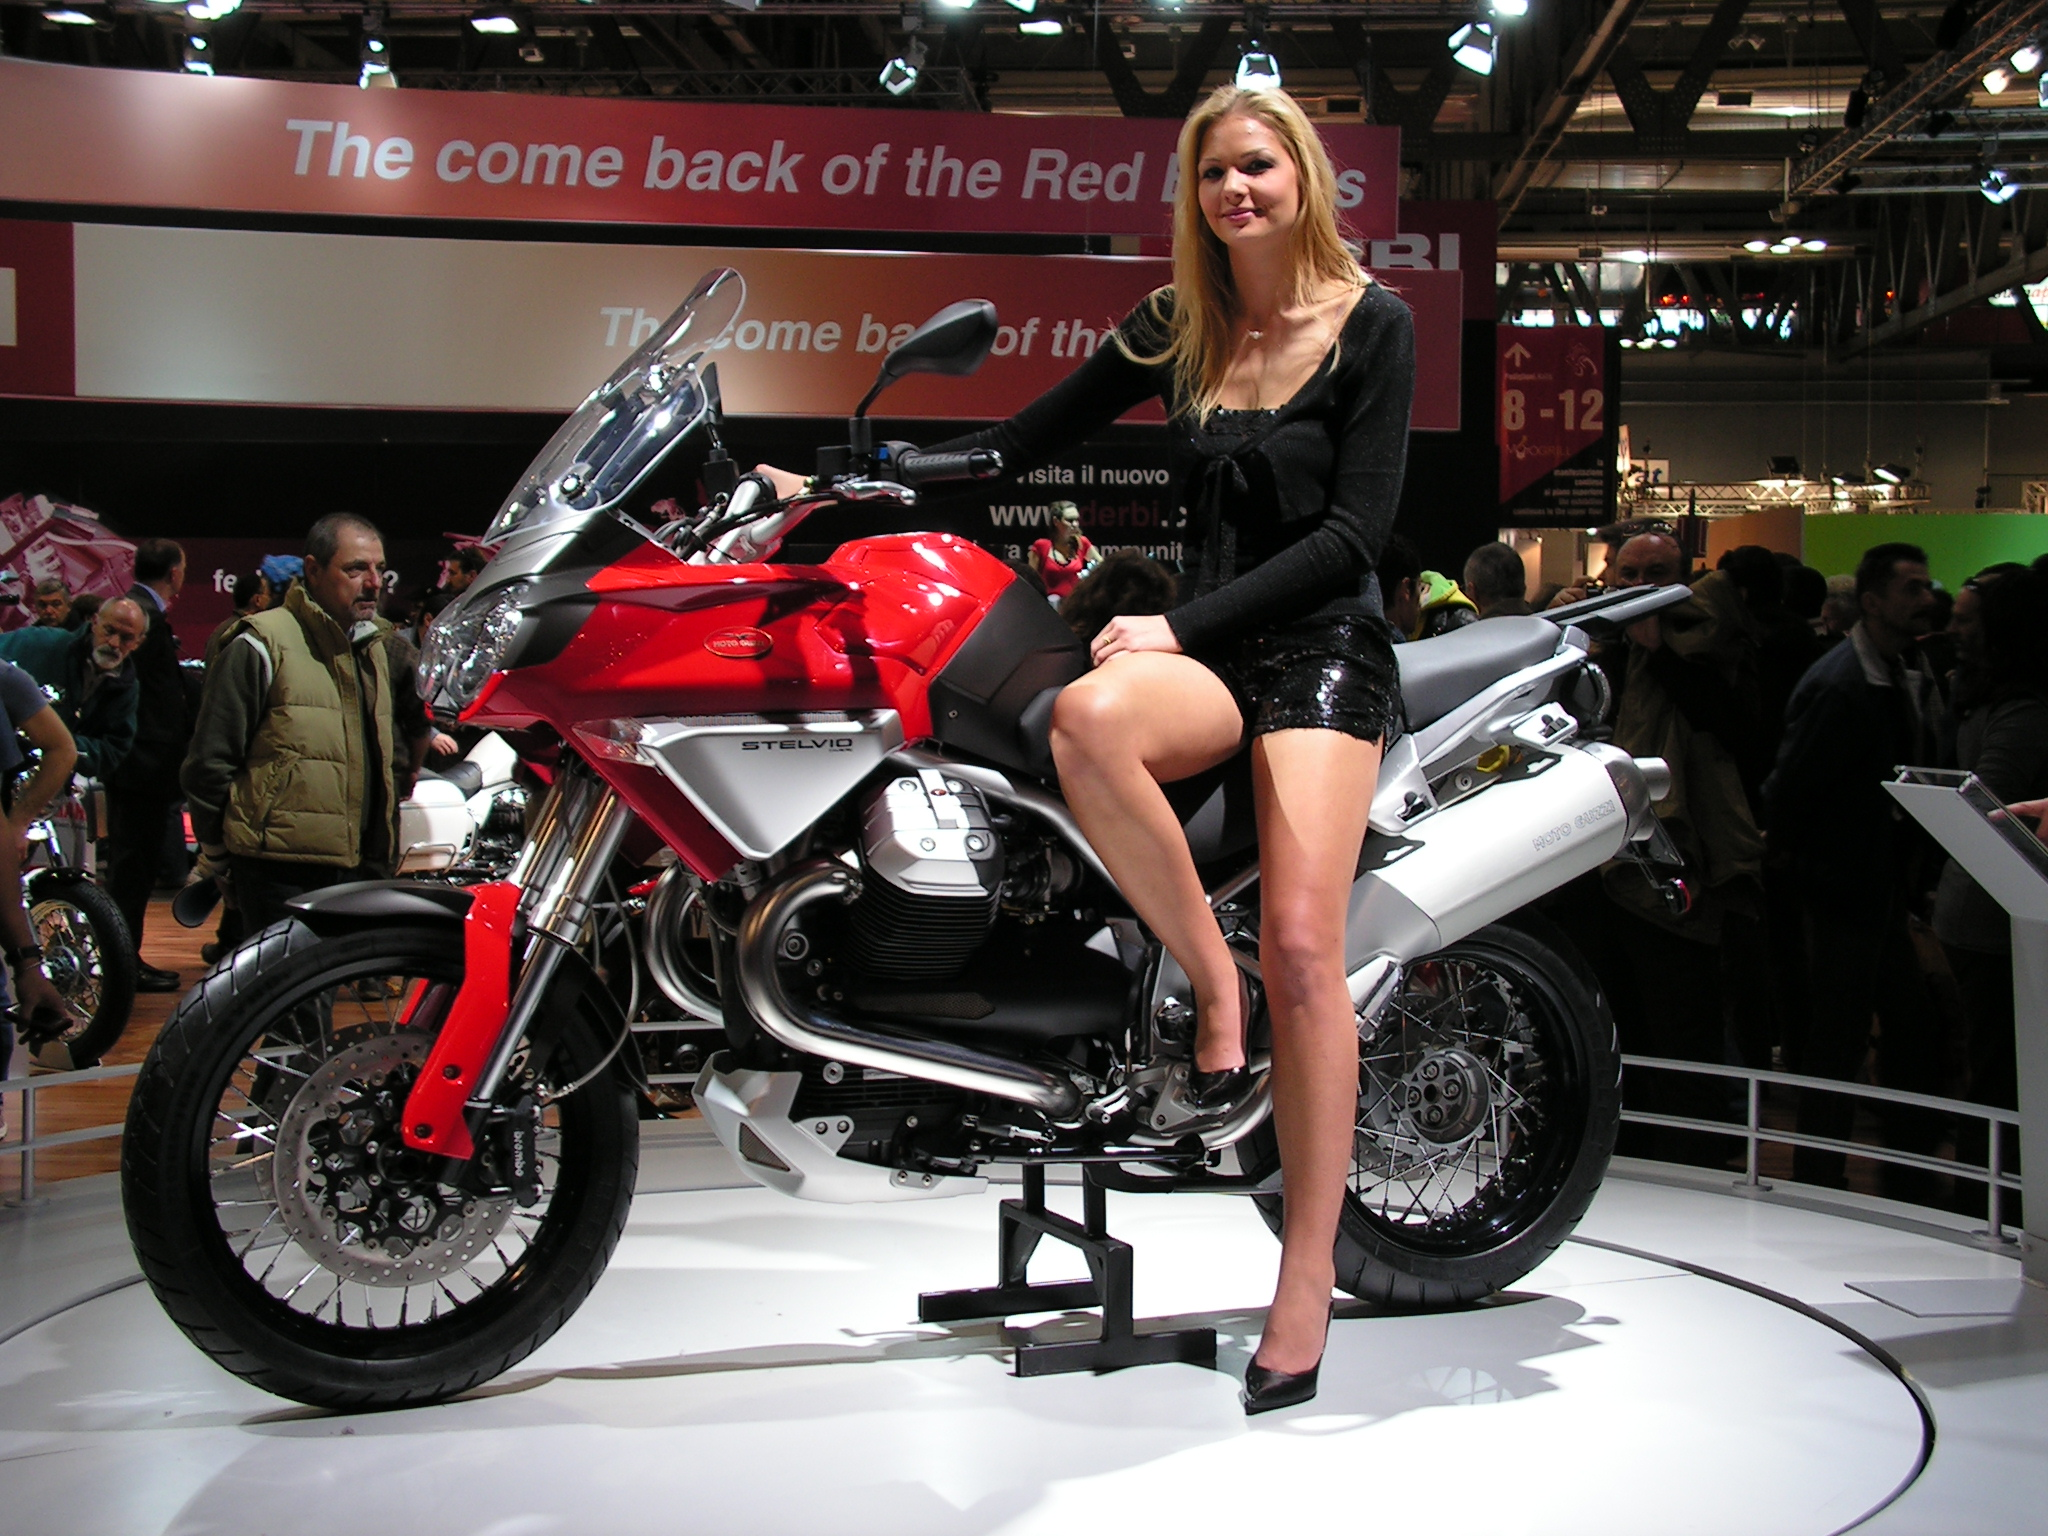 Description moto guzzi stelvio